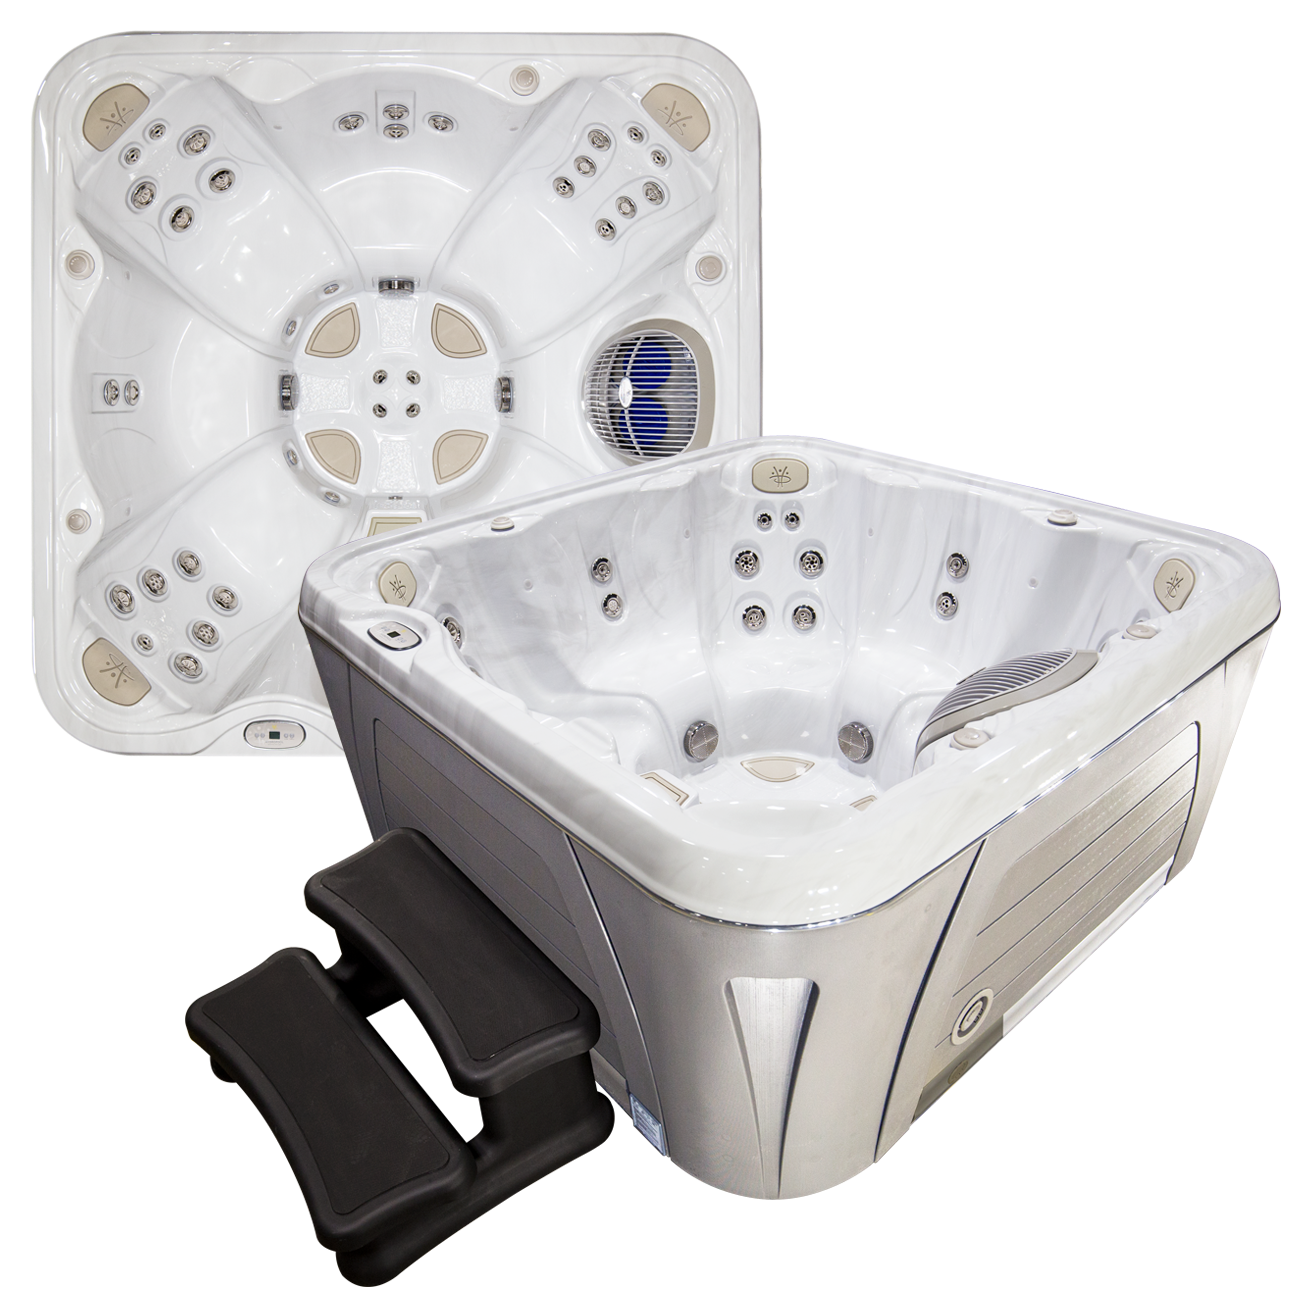 Hot Tubs For Sale From Hydropool Spas